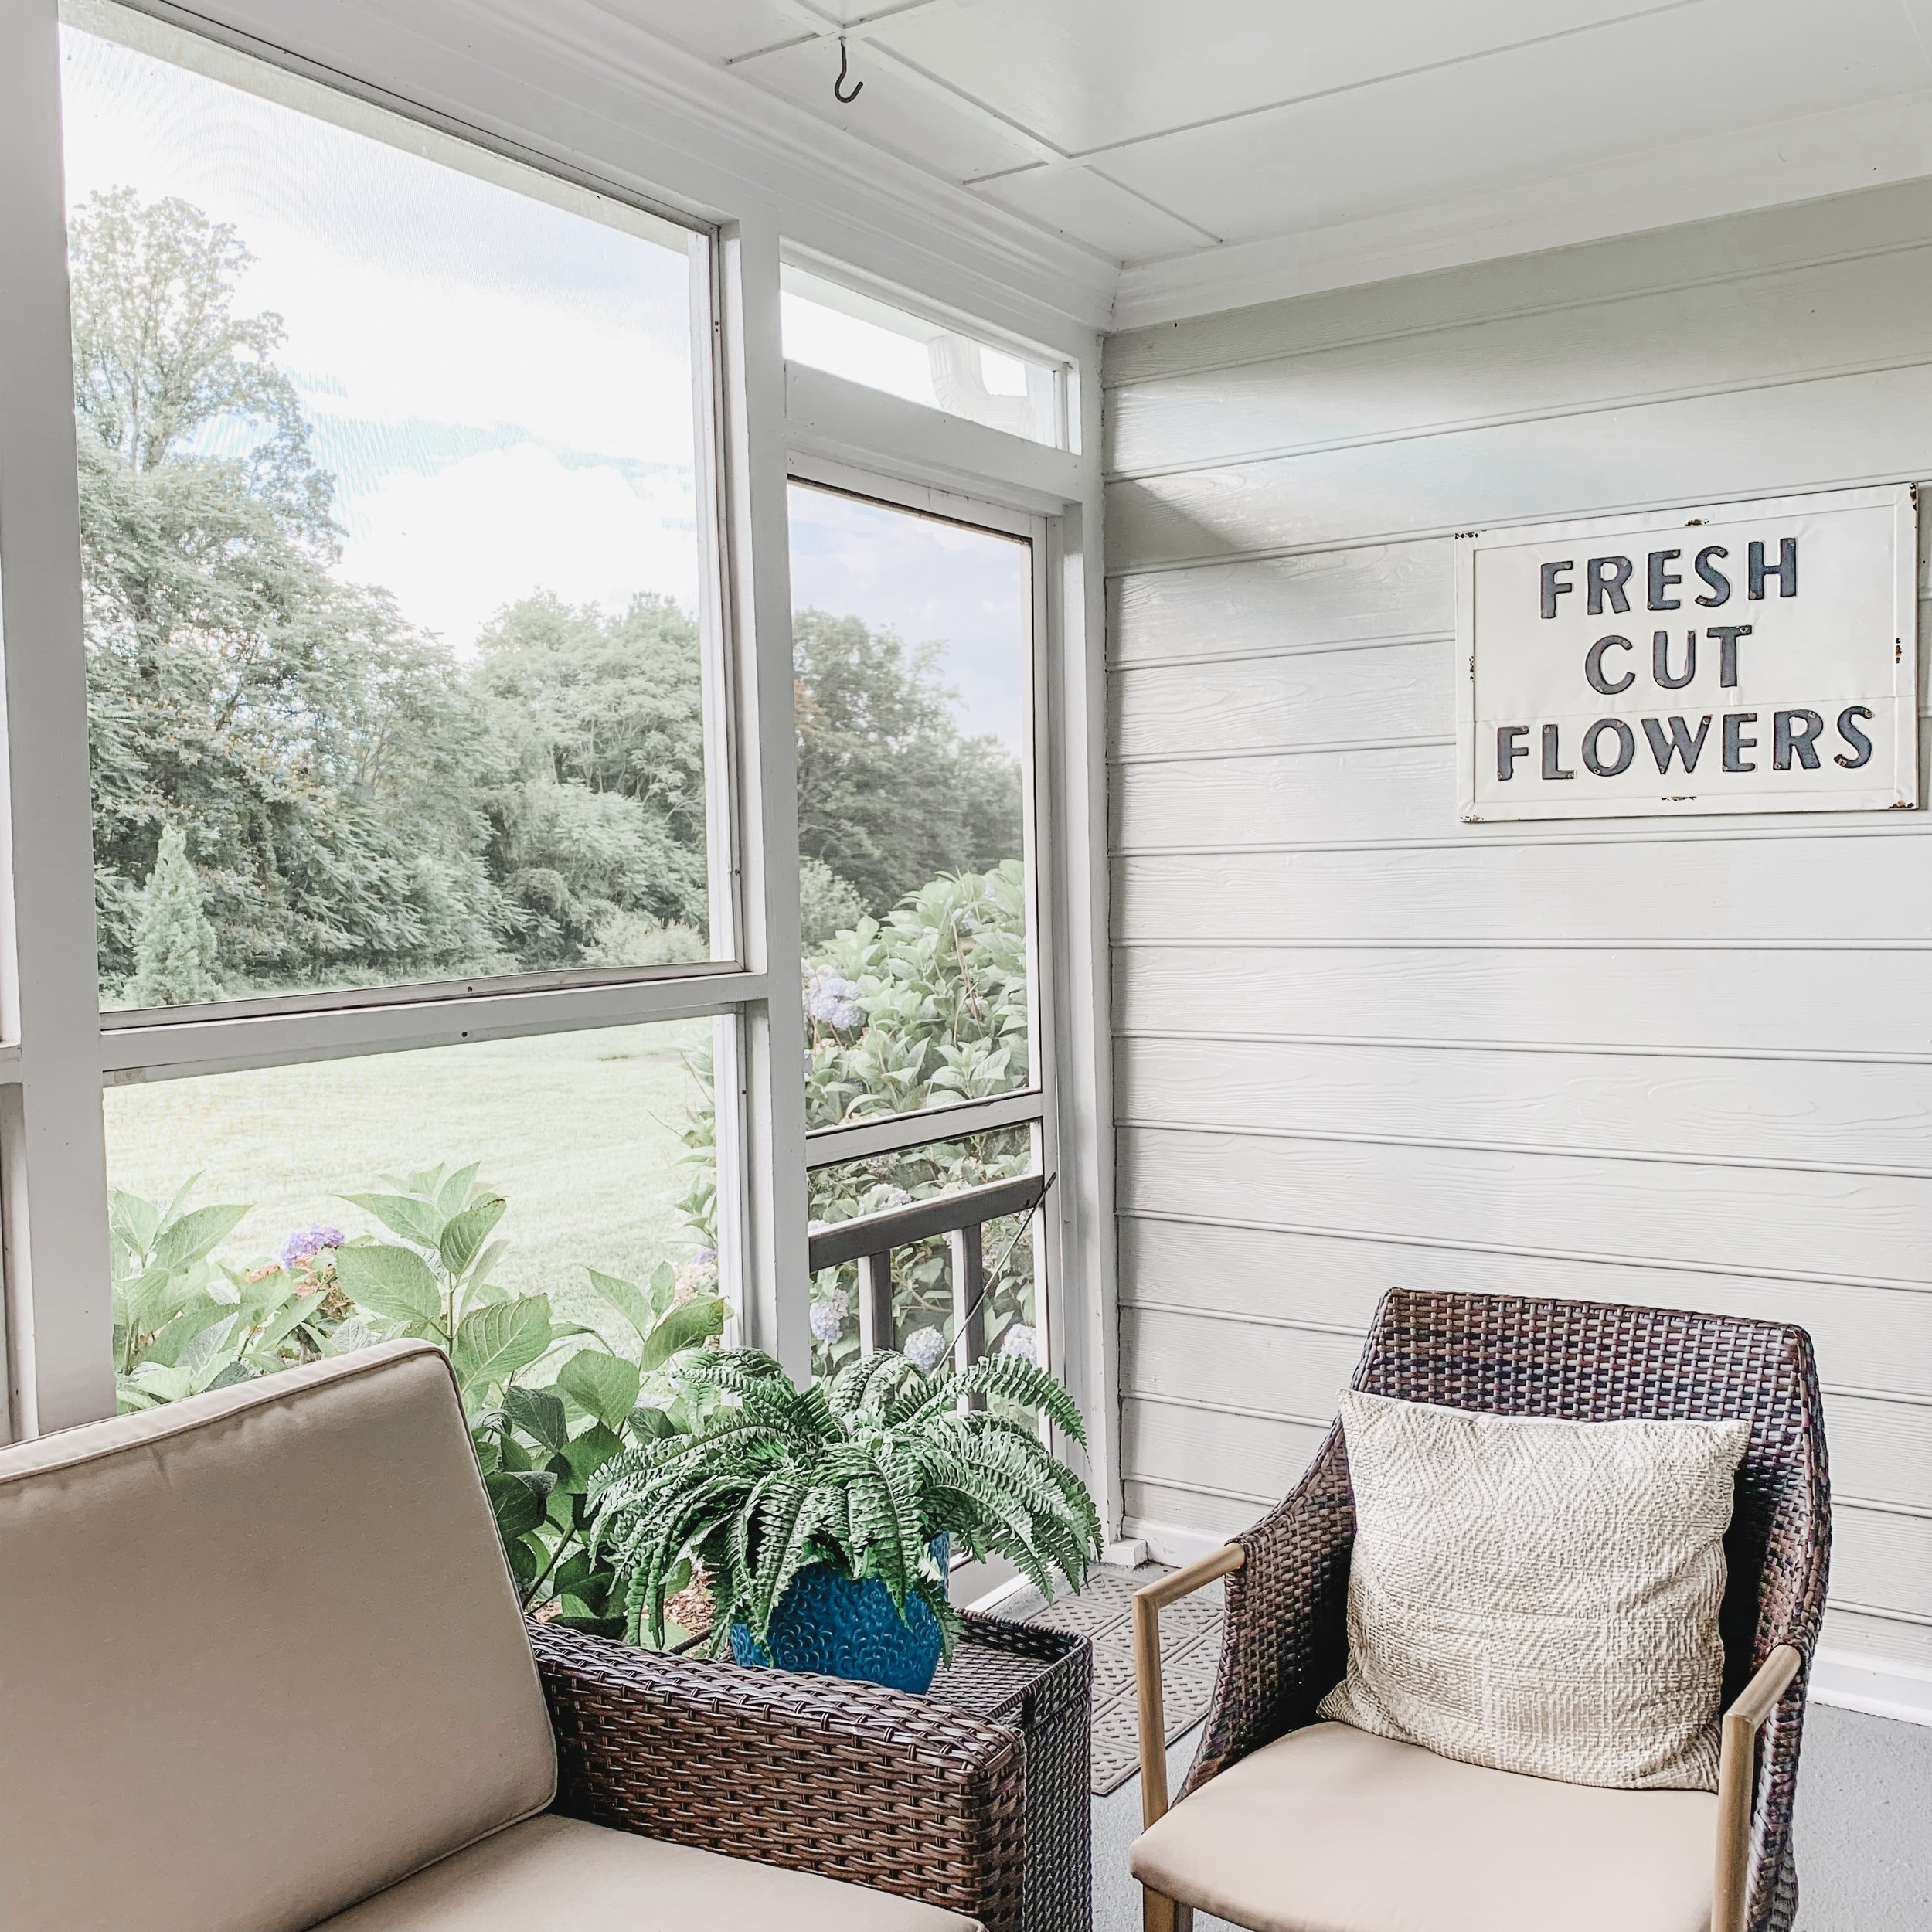 Our little reading nook on the screened-in porch